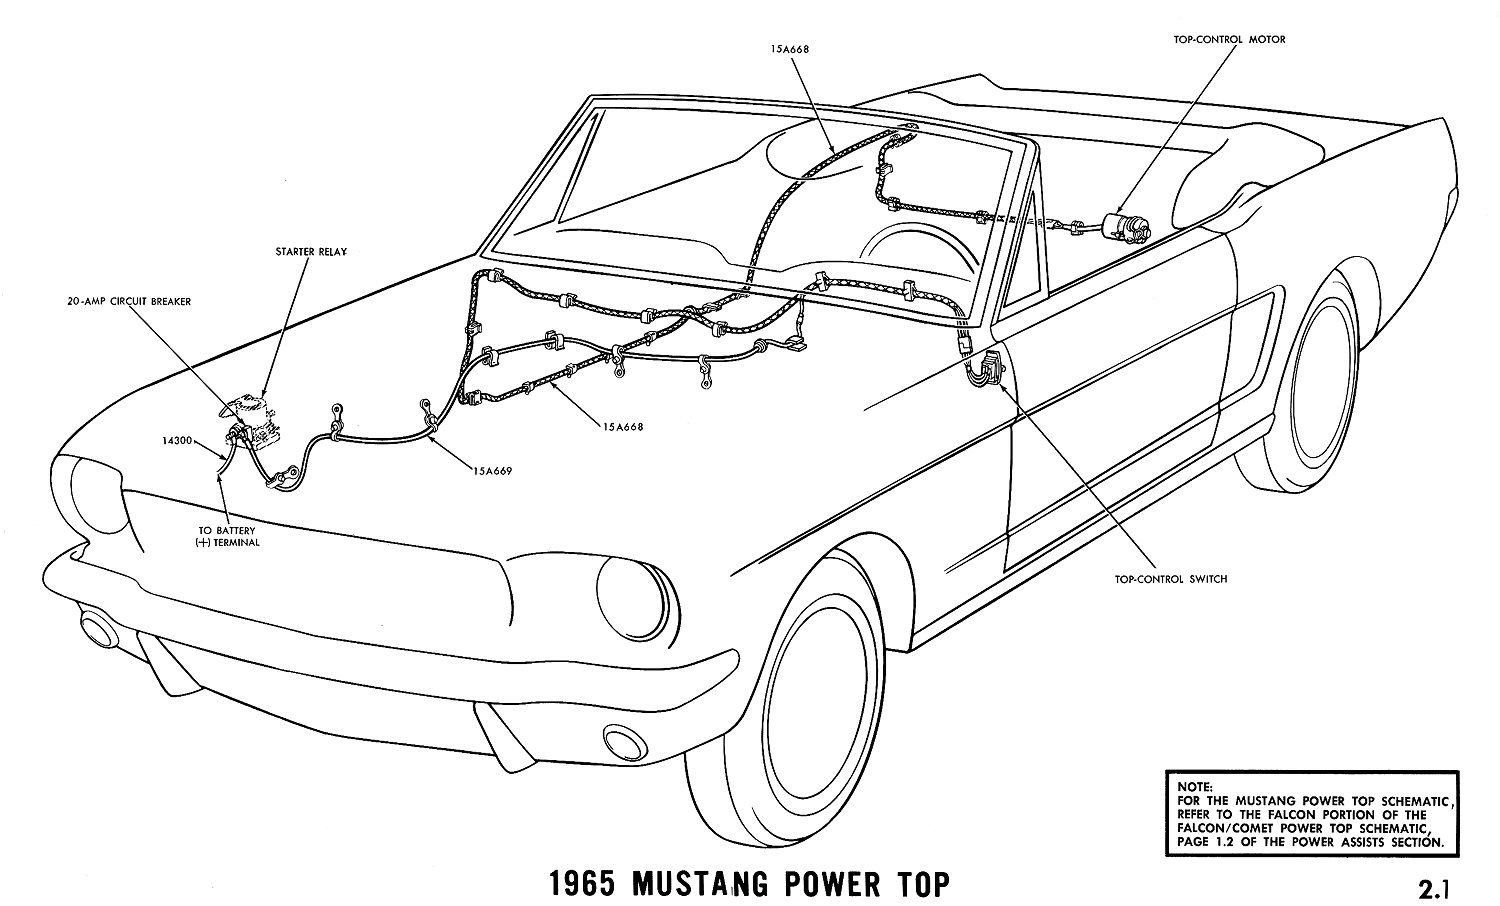 1965j 1965 mustang wiring diagrams average joe restoration 1969 mustang alternator wiring diagram at gsmportal.co